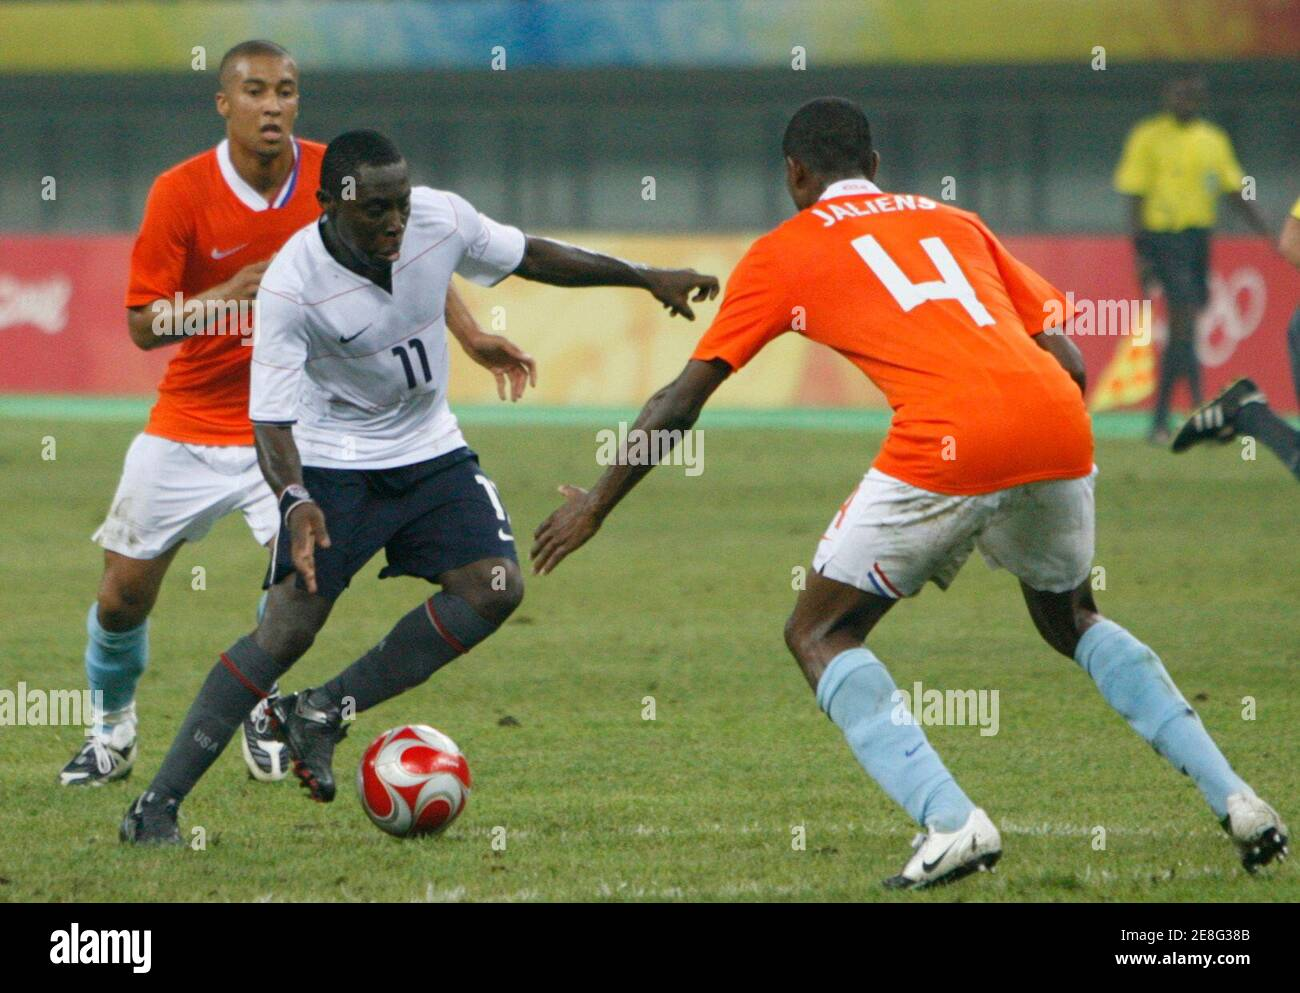 Kenneth Vermeer (L) and Kew Jaliens (R) of the Netherlands battle for the ball with Marvell Wynne of the U.S. during their men's Group B soccer match at the Beijing 2008 Olympic Games in Tianjin August 10, 2008.     REUTERS/Claro Cortes IV (CHINA) Banque D'Images